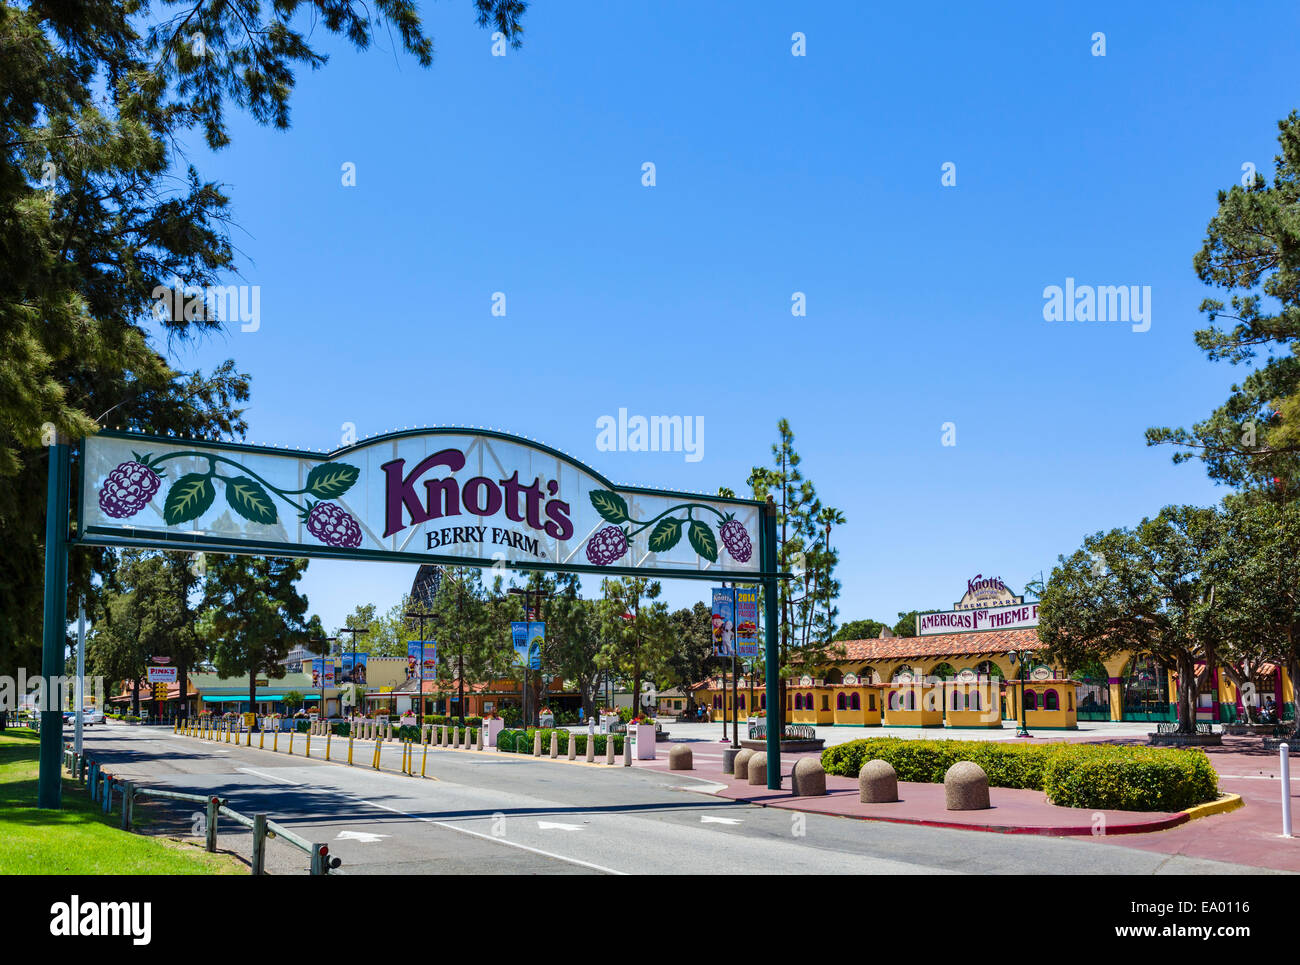 Eingang zum Knotts Berry Farm in Buena Park, Orange County, in der Nähe von Los Angeles, Kalifornien, USA Stockbild